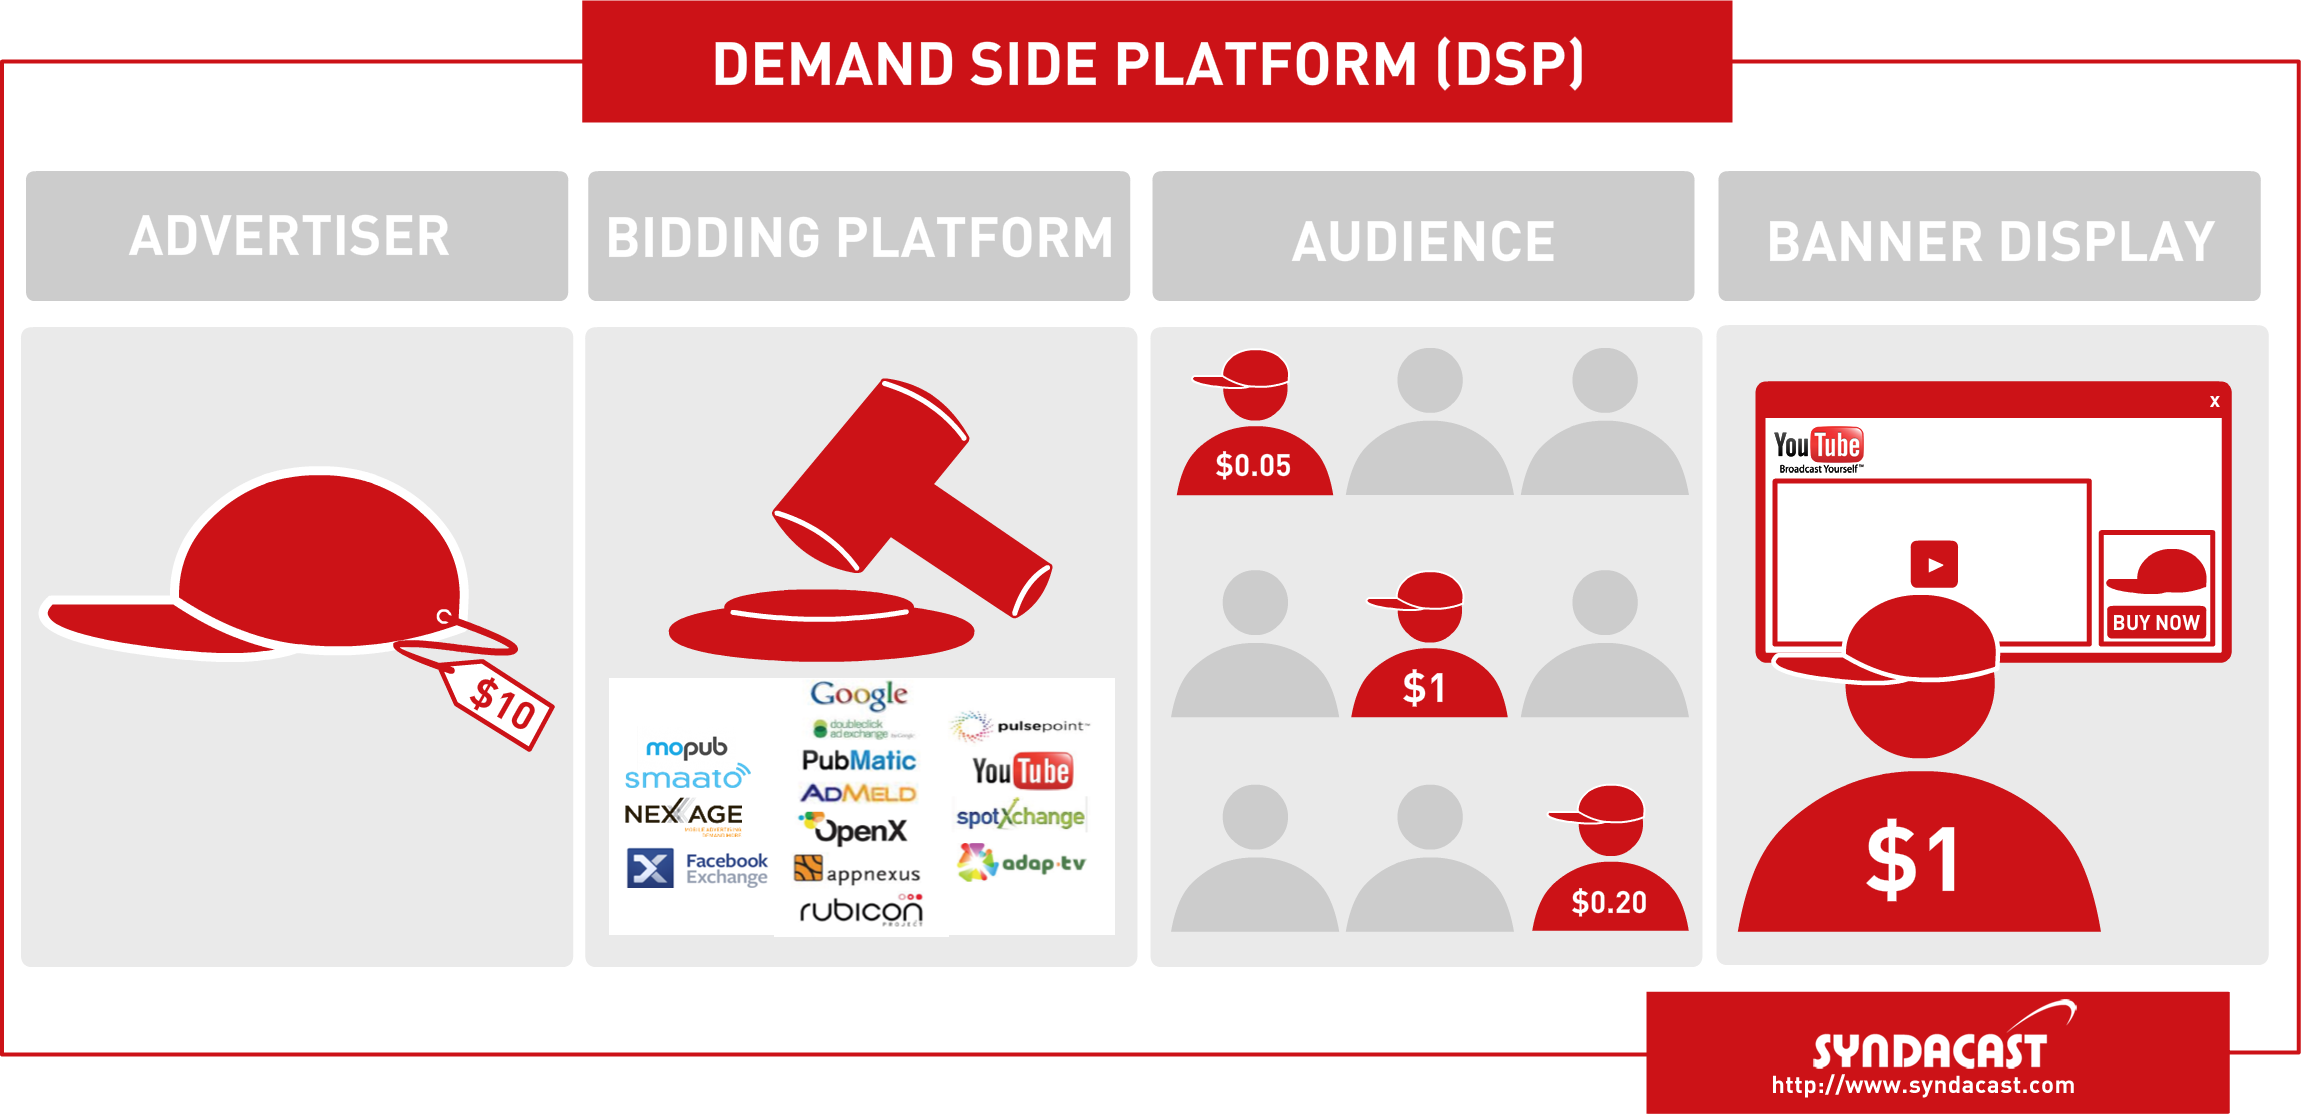 Syndacast DSP Demand Side Platform